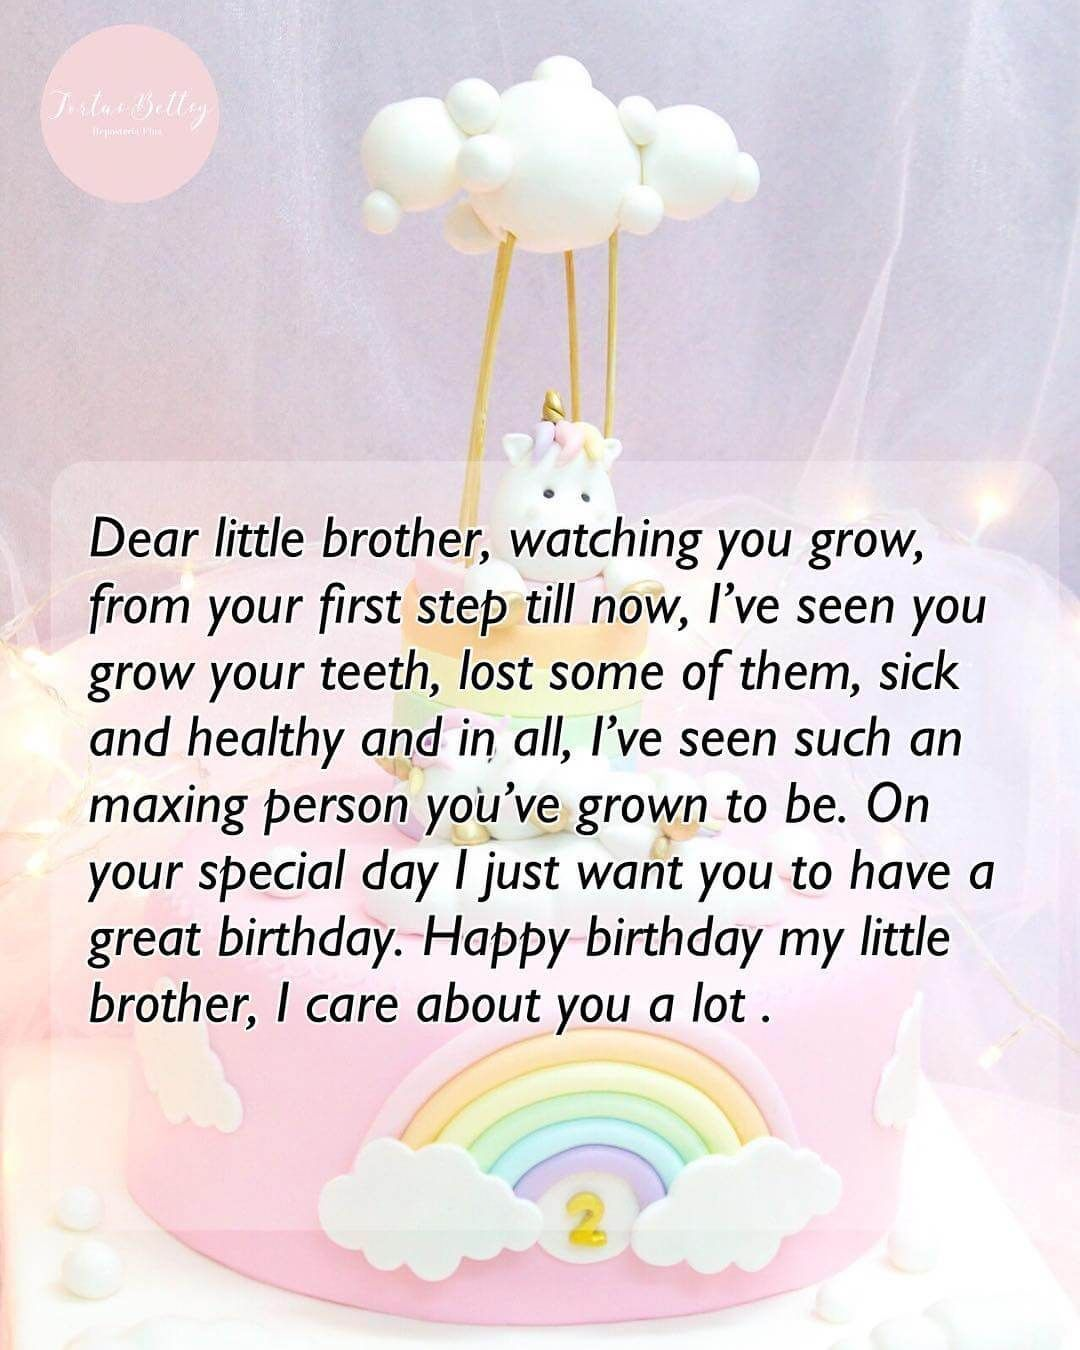 Short And Long Happy Birthday Quotes Wishes For Brother The Right Messages Happy Birthday Brother Quotes Brother Birthday Quotes Birthday Message For Brother